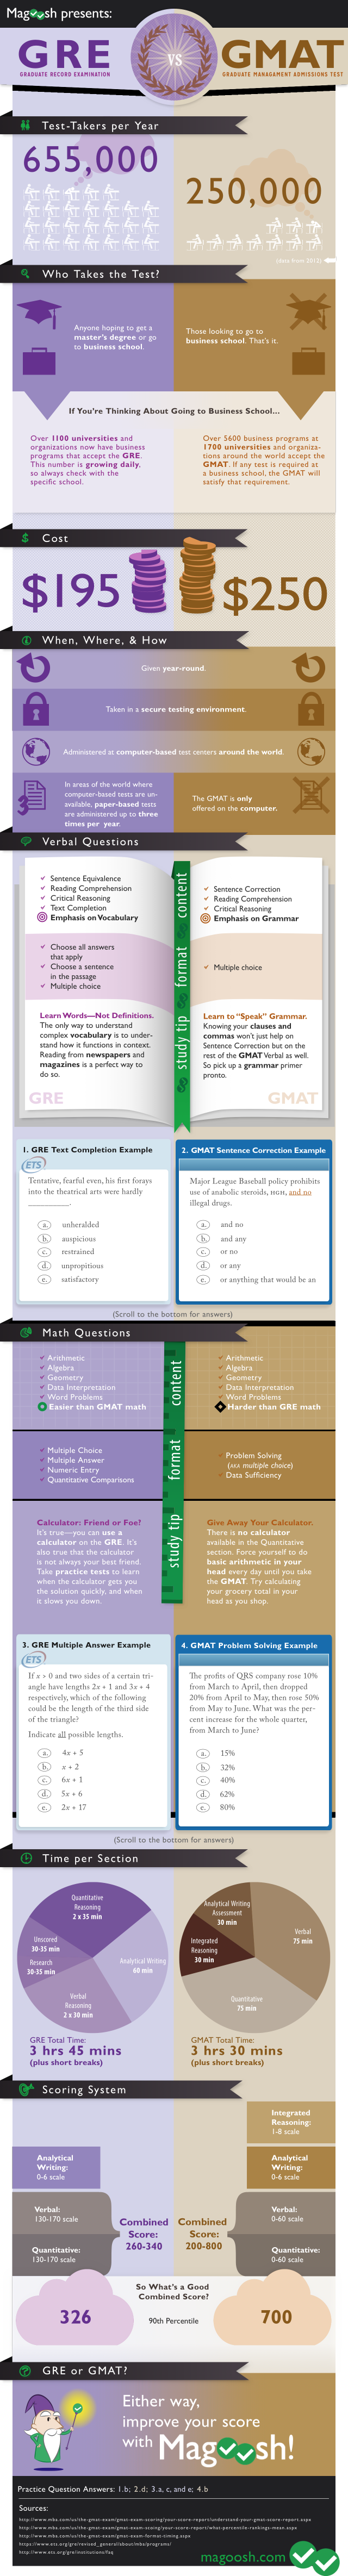 Which is easier: the MAT or GRE?